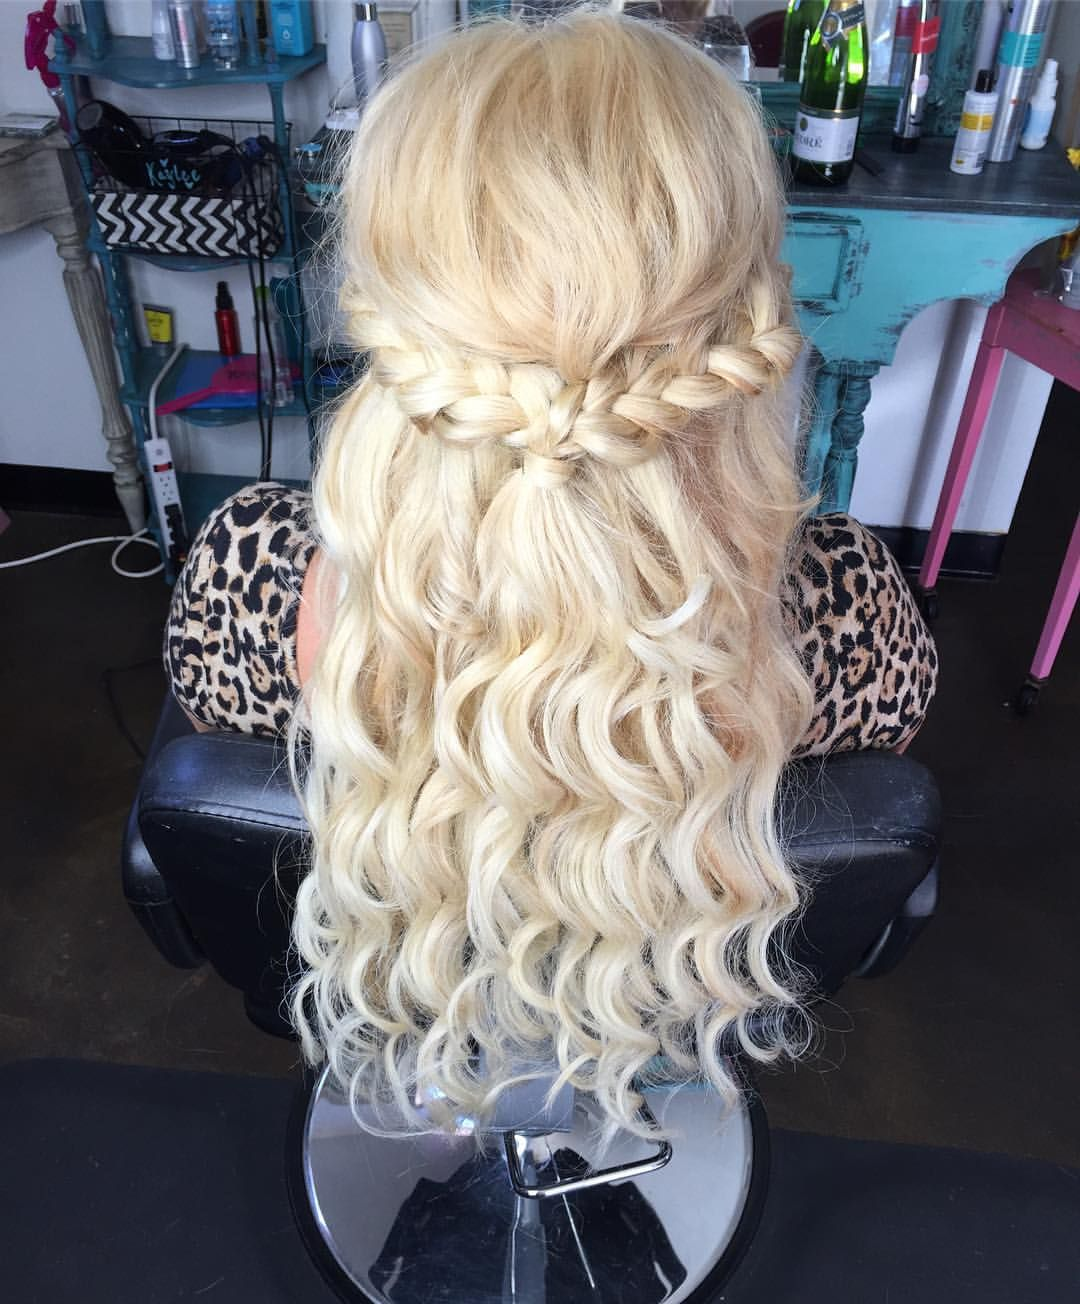 See this instagram photo by myluckylocks 46 likesmyluckylocks22 locks hair extensions on the one and only gorgeous missdentonunicorn aka the denton unicorn queen myluckylocks dentontx dentonextensions pmusecretfo Choice Image